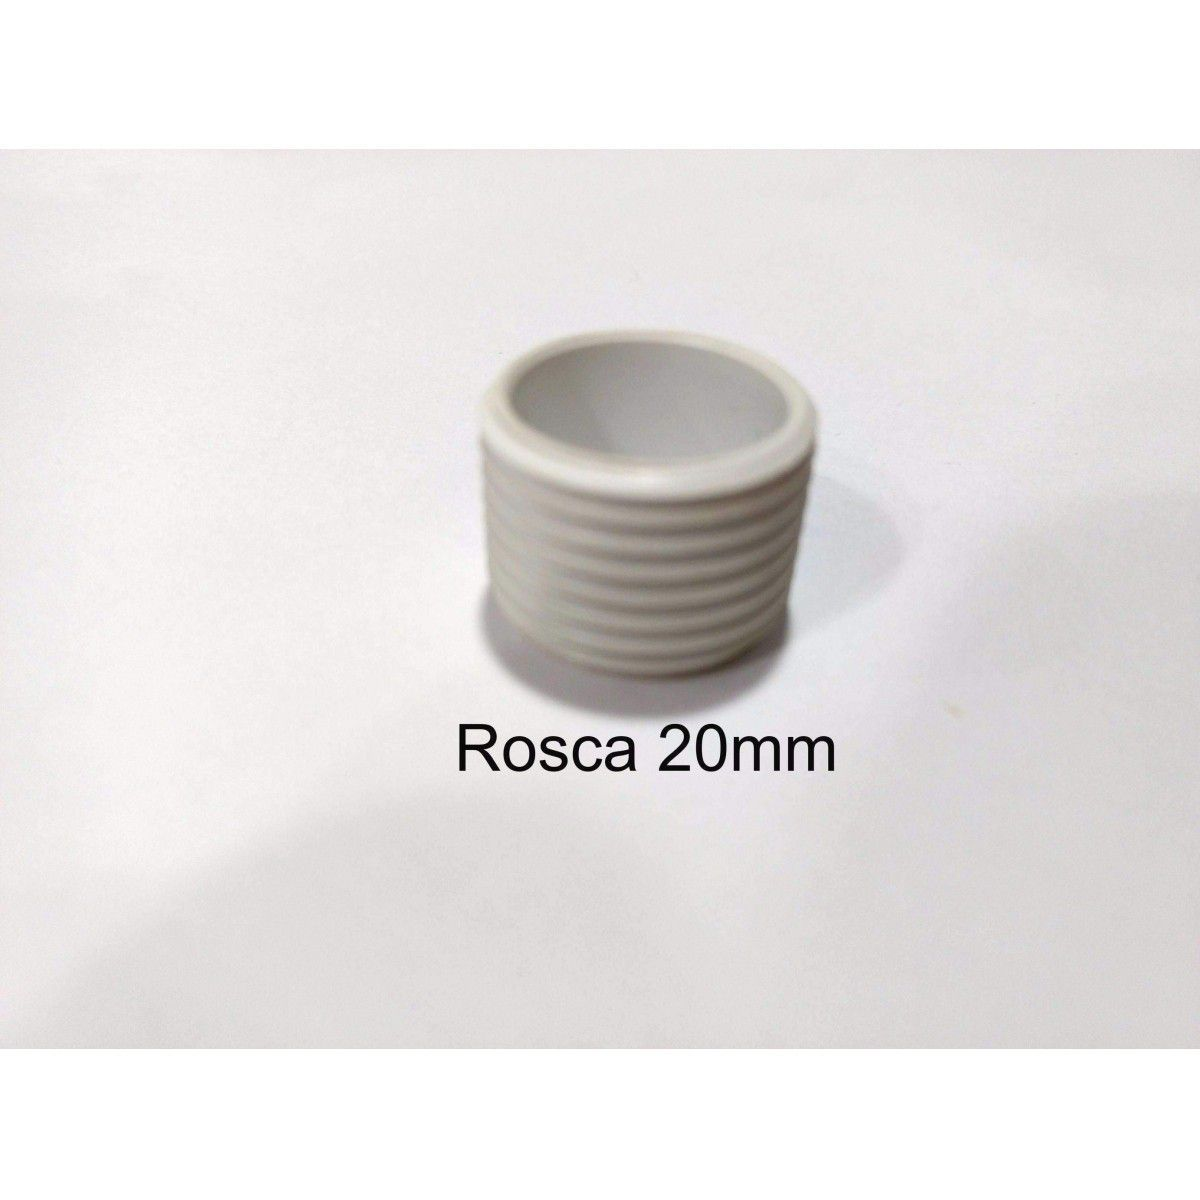 Adaptador para Leds Tec Light e Light Tech - Rosca de 20mm